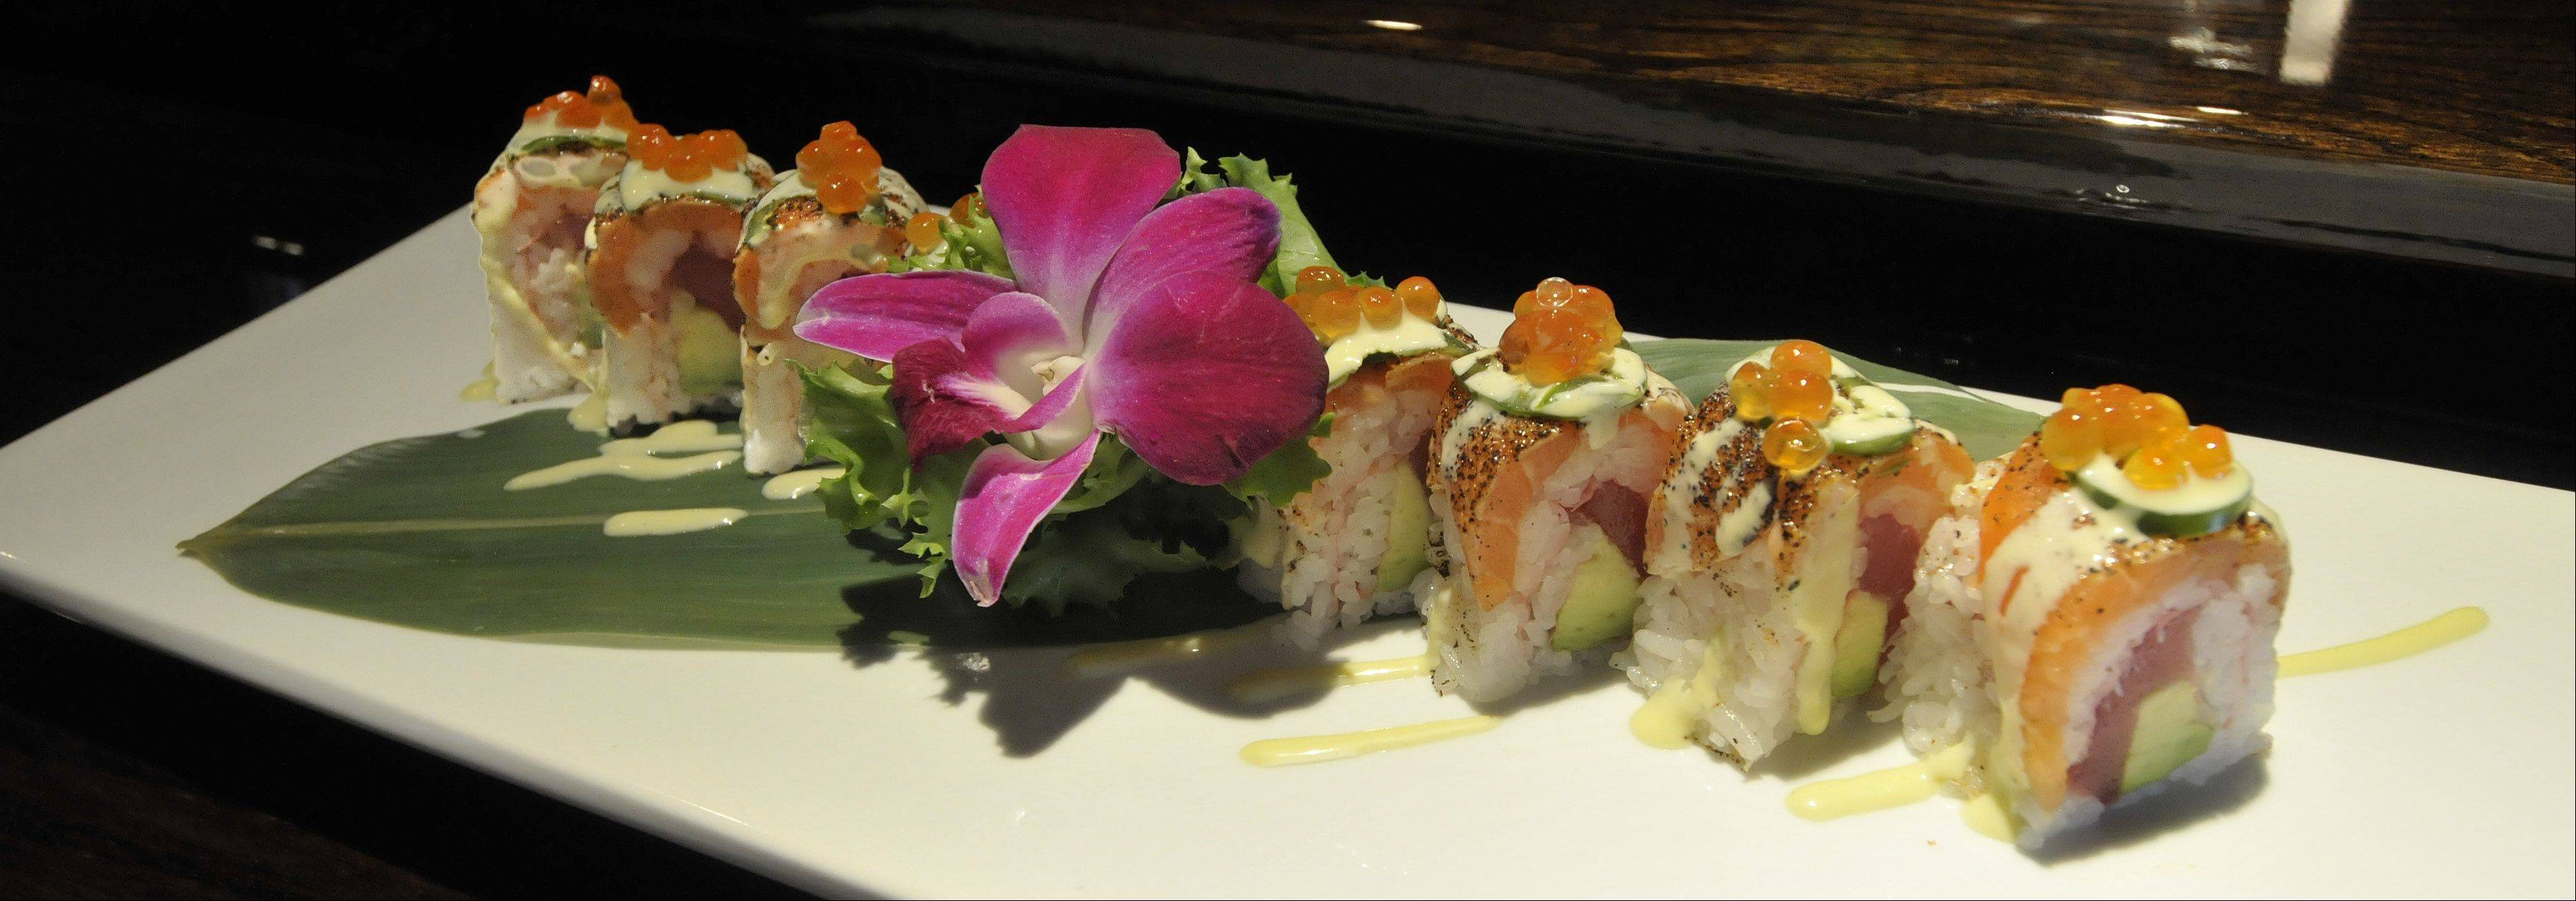 The Cubs roll is just one of the fancy sushi creations on the menu at Dao Sushi & Thai.